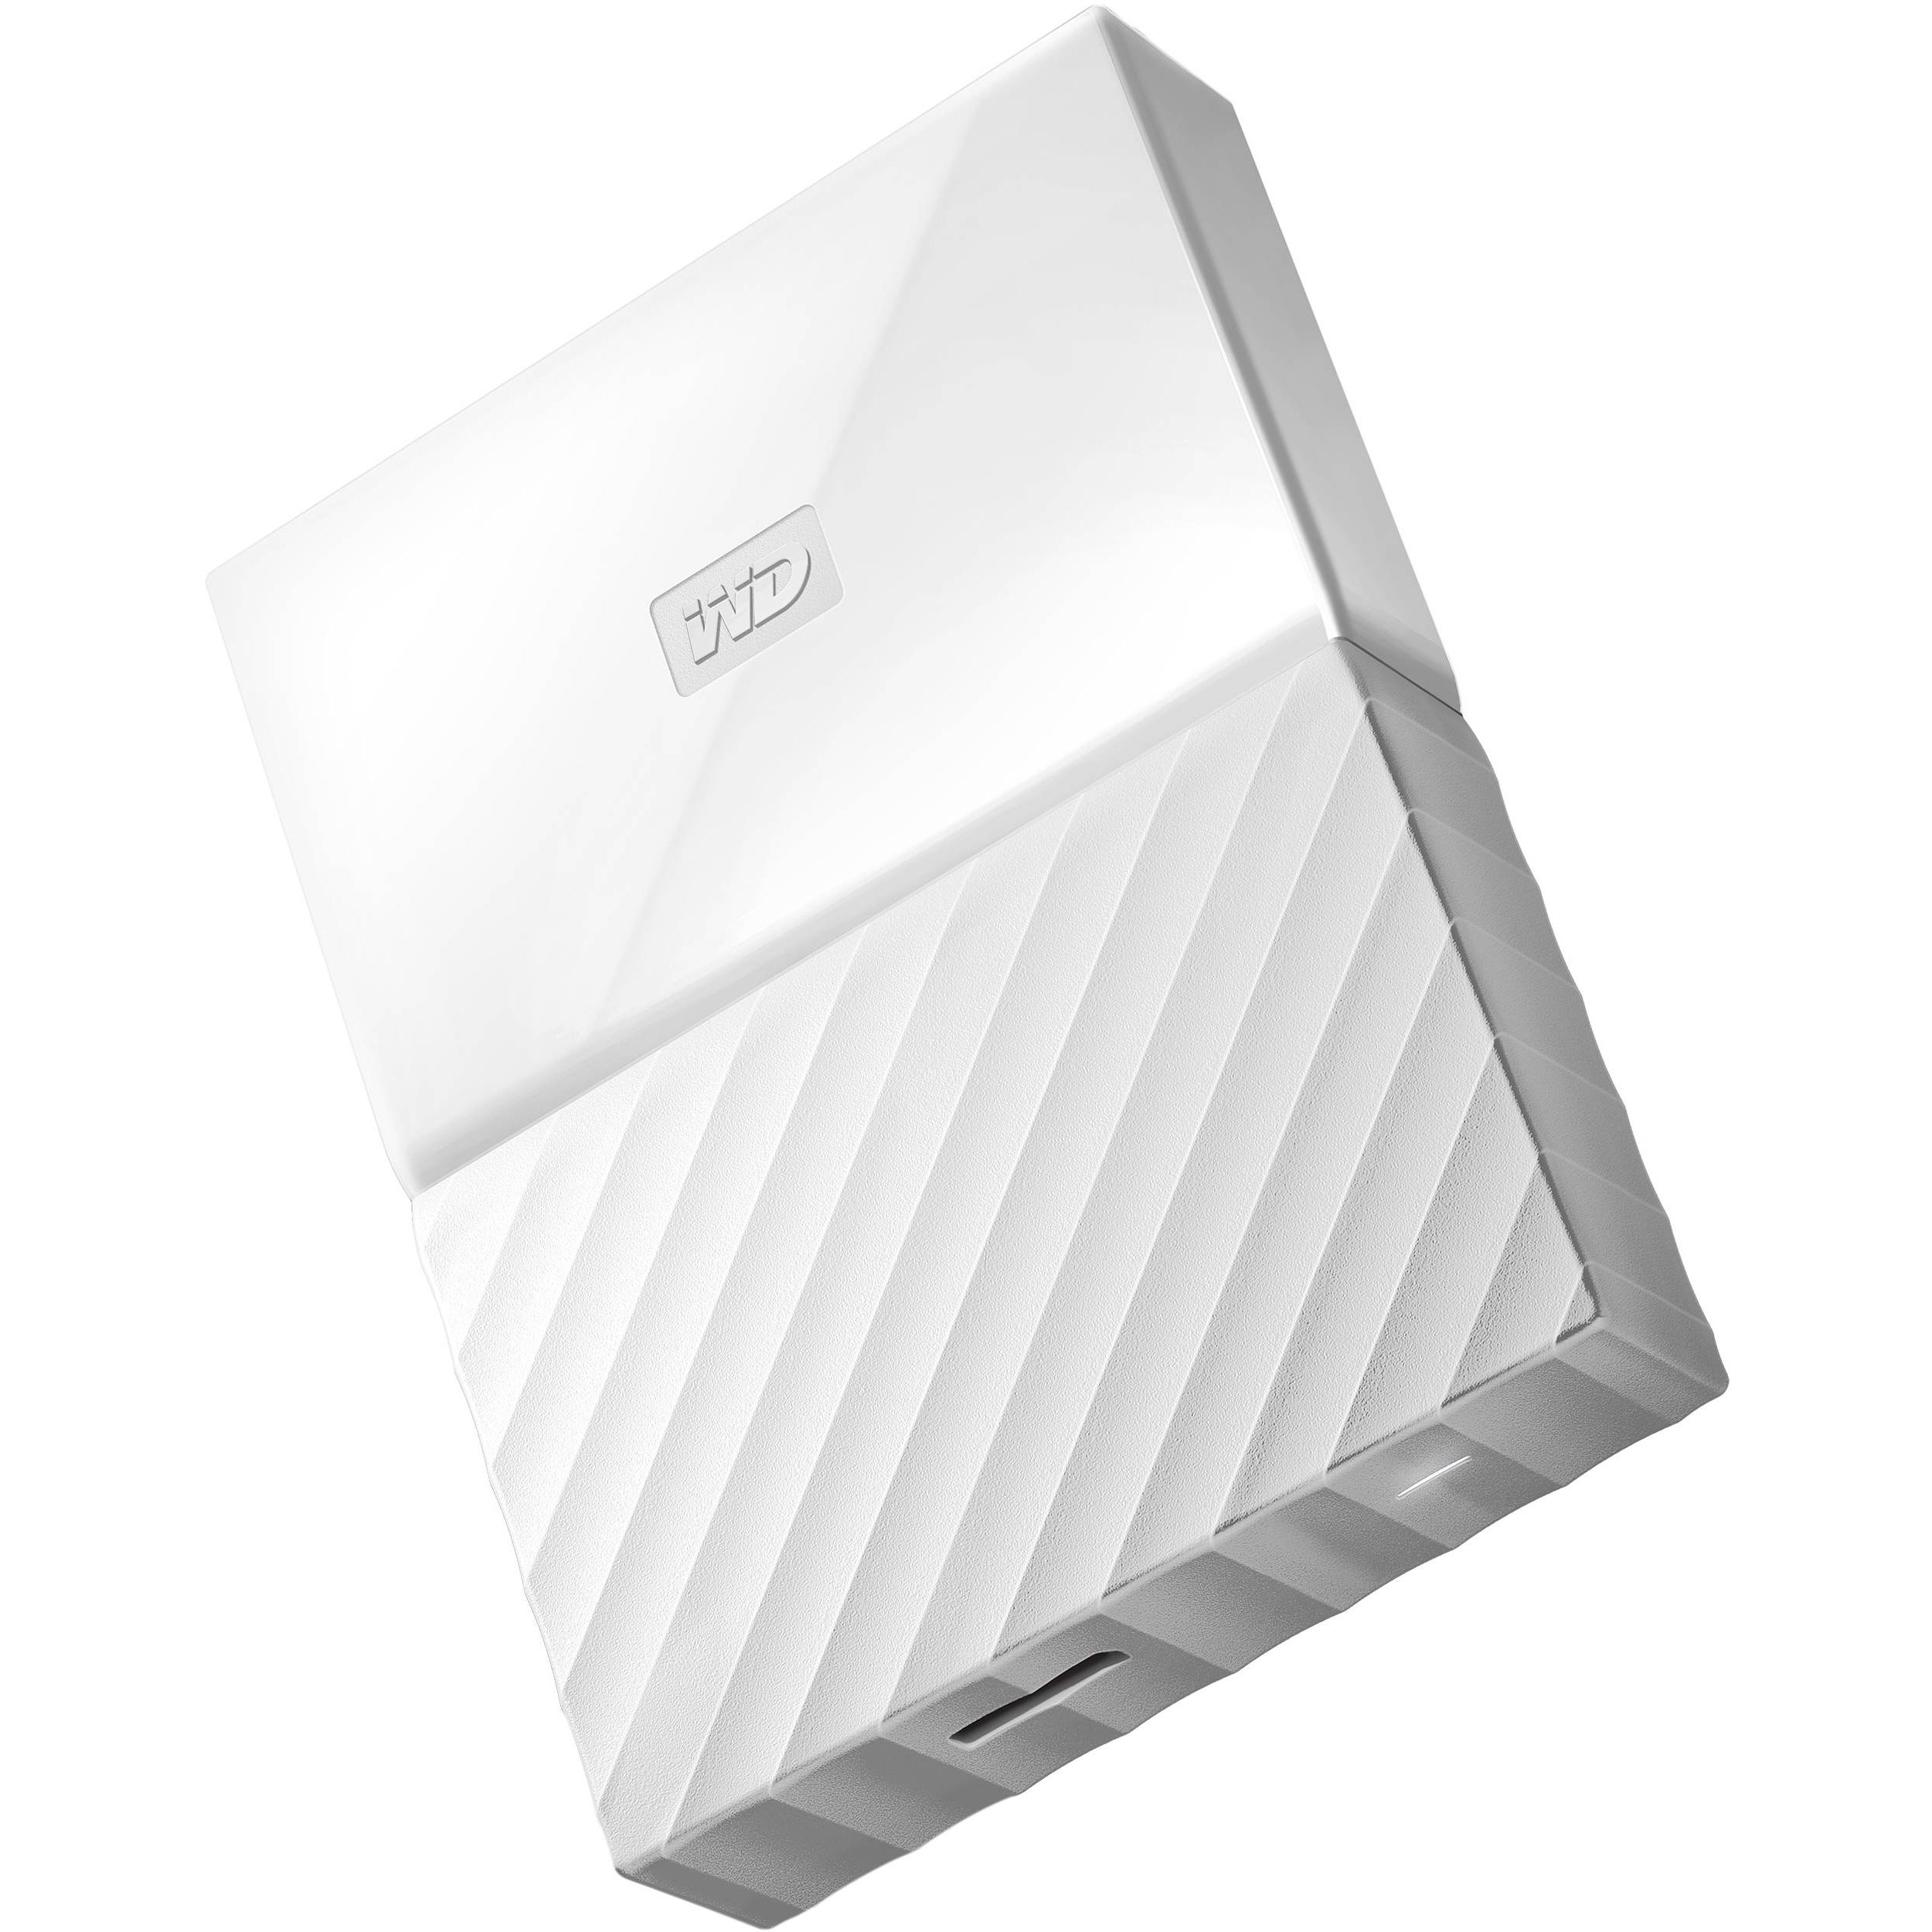 Original Western Digital My Passport White 4TB USB 3.0 External Hard Drive  (WDBYFT0040BWT)